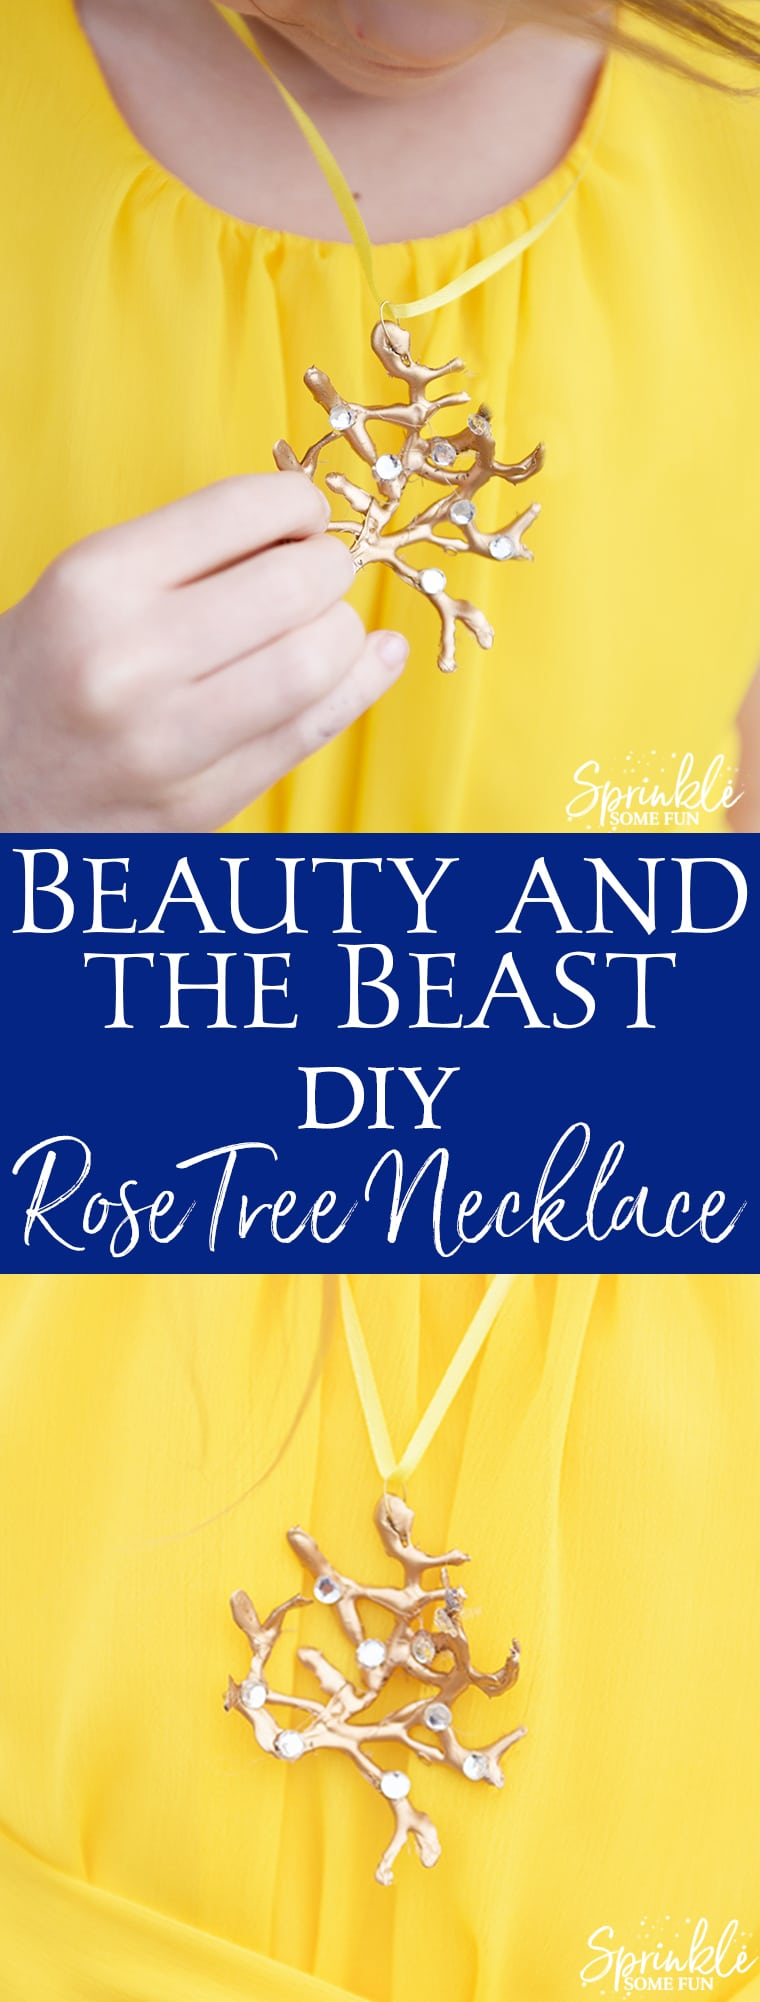 DIY Beauty and the Beast Rose Tree Necklace is just like the one Belle wears in the live action film!  Make it easy with a glue gun, spray paint and some rhinestones!